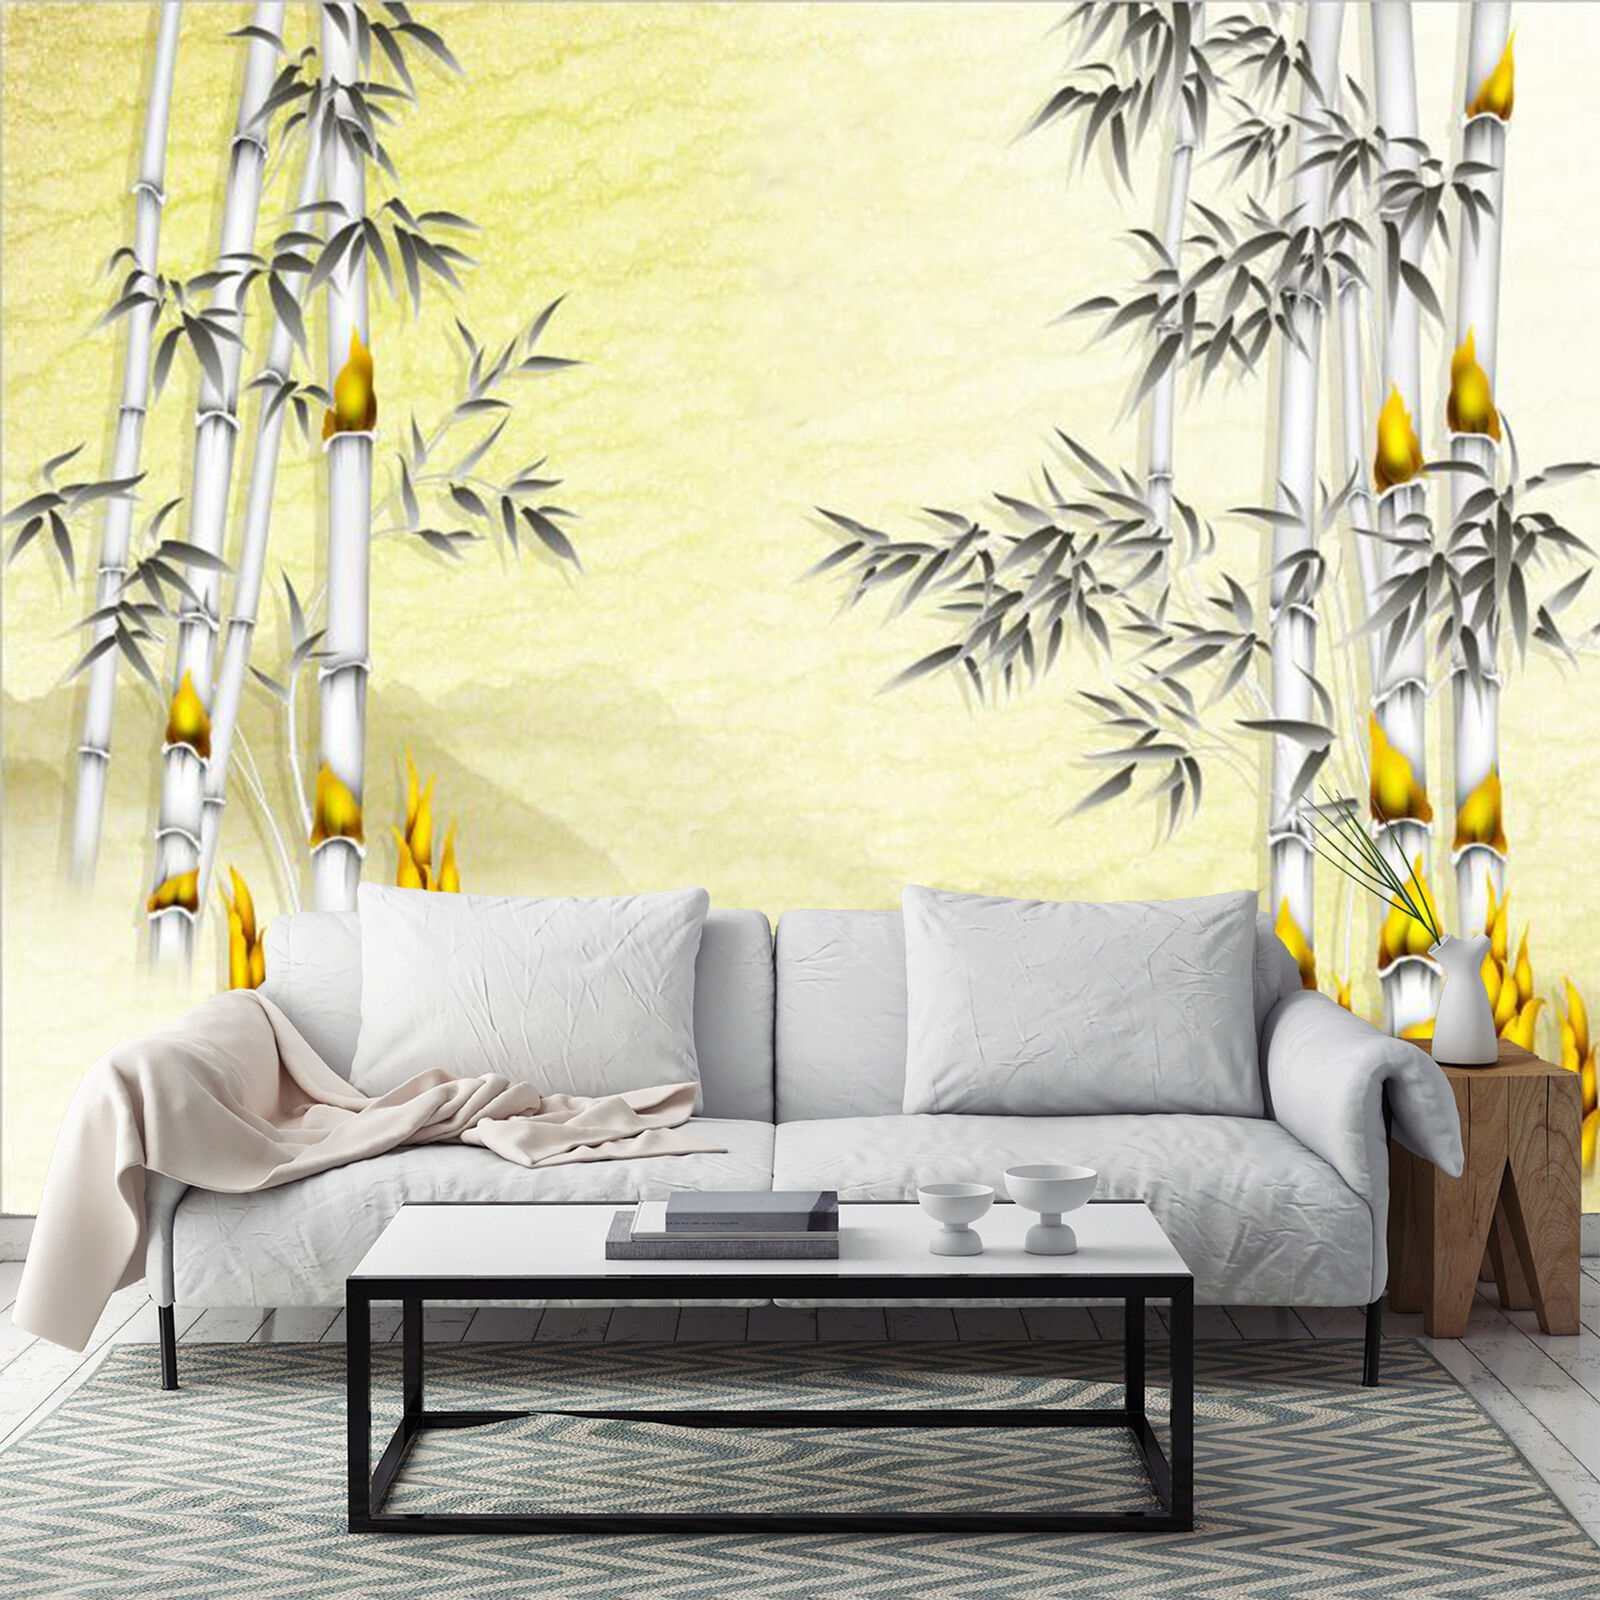 3D Golden bamboo 2525 Wall Paper Wall Print Decal Wall Indoor Murals Wall US